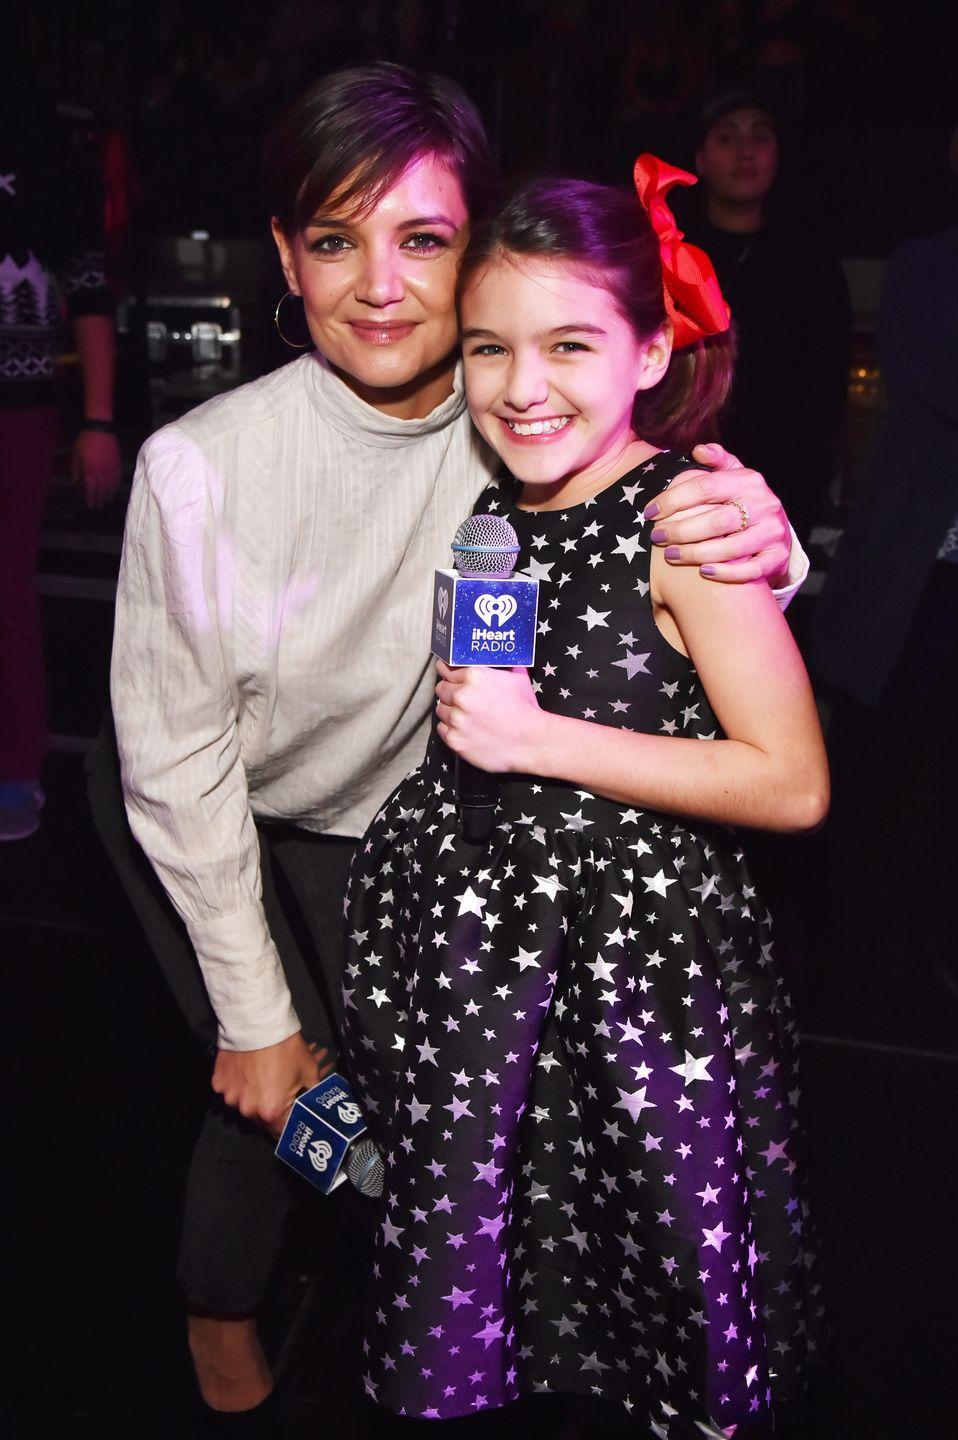 <p>Katie Holmes and Tom Cruise's only child together, Suri Cruise, looks like her mom's mini-me. Now 14 years old, Suri is the spitting image of the actress—sharing the same smile and facial features. <br></p>